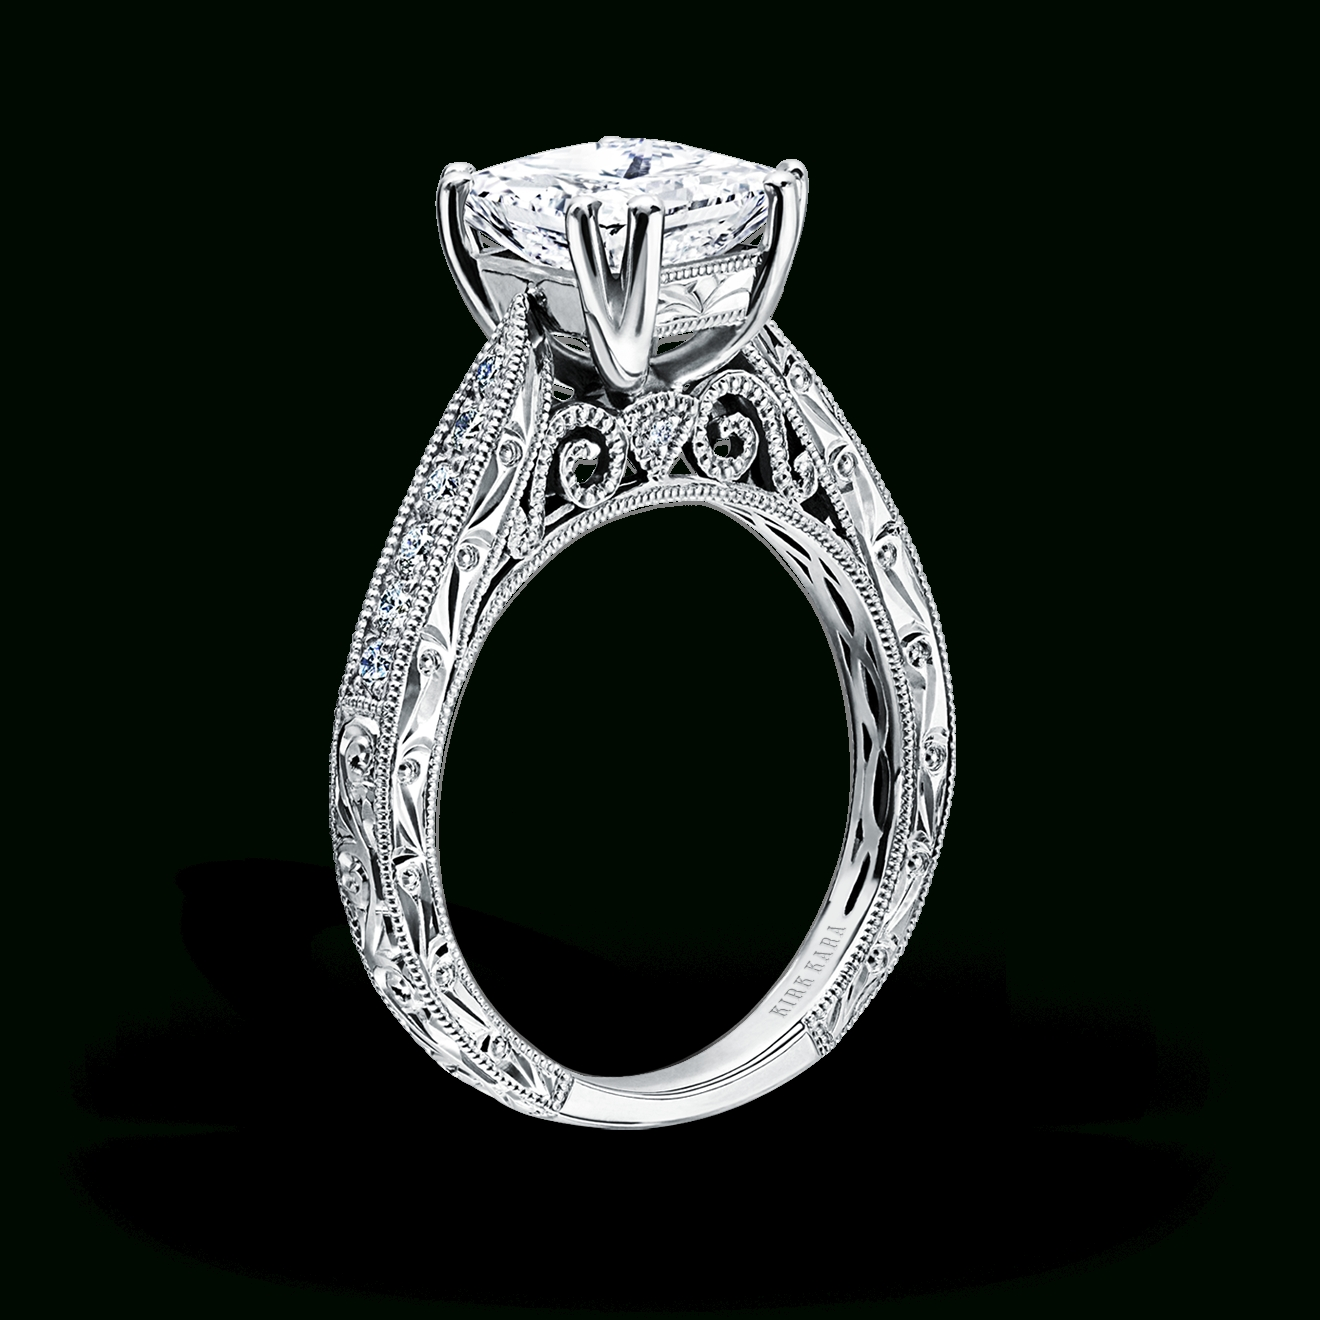 Captivating Designer Diamond Engagement Ringskirk Kara Inside Diamond Wedding Rings (View 9 of 15)